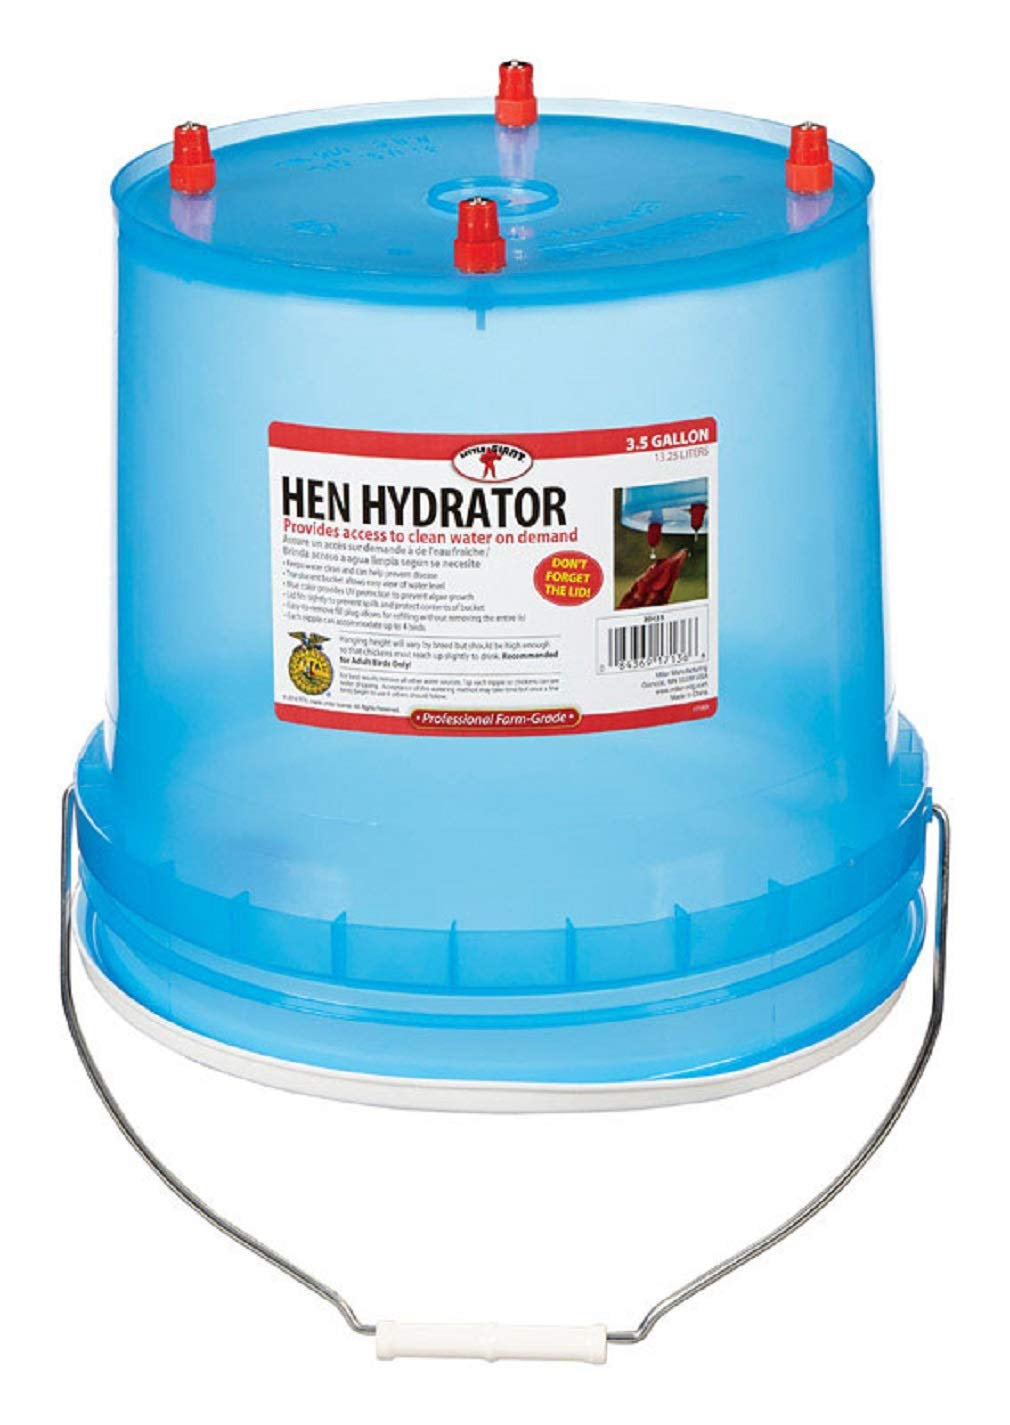 LITTLE GIANT Hh35 Hen Hydrator, Plastic (Pack of 4)